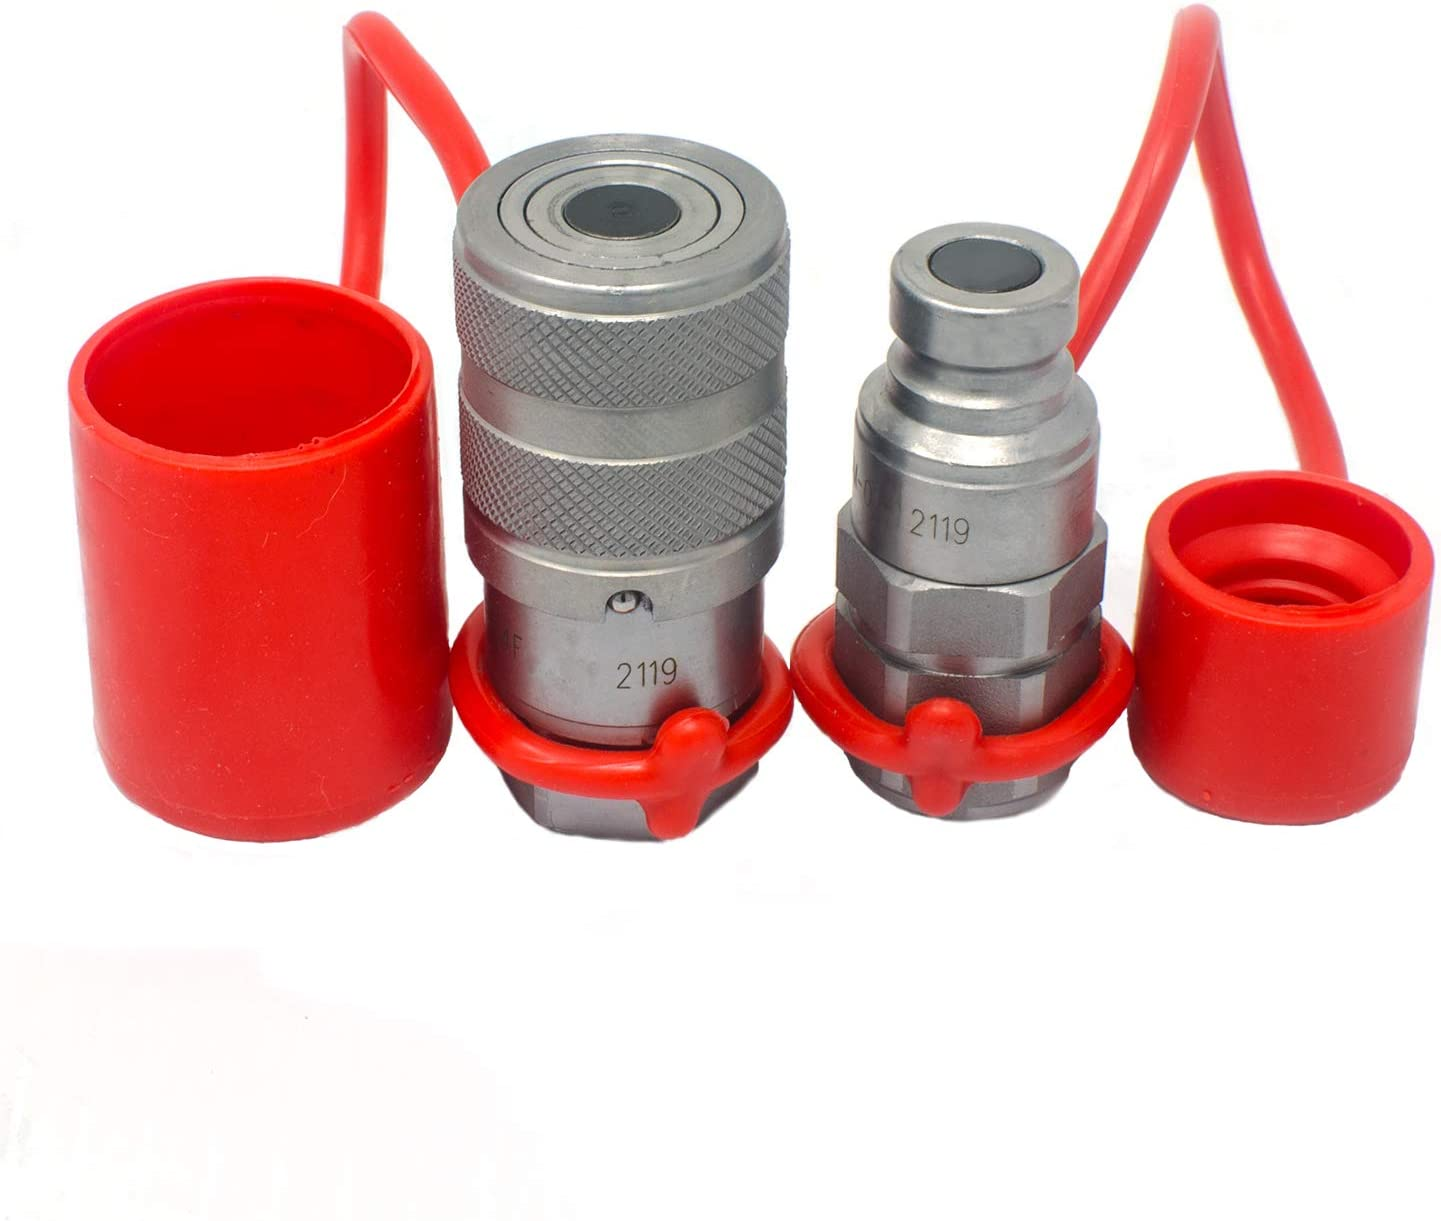 1//4 Coupling x 1//4-18 NPTF Dixon Valve /& Coupling 2HTF2 Steel Flush Face Hydraulic Quick-Connect Fitting Coupler